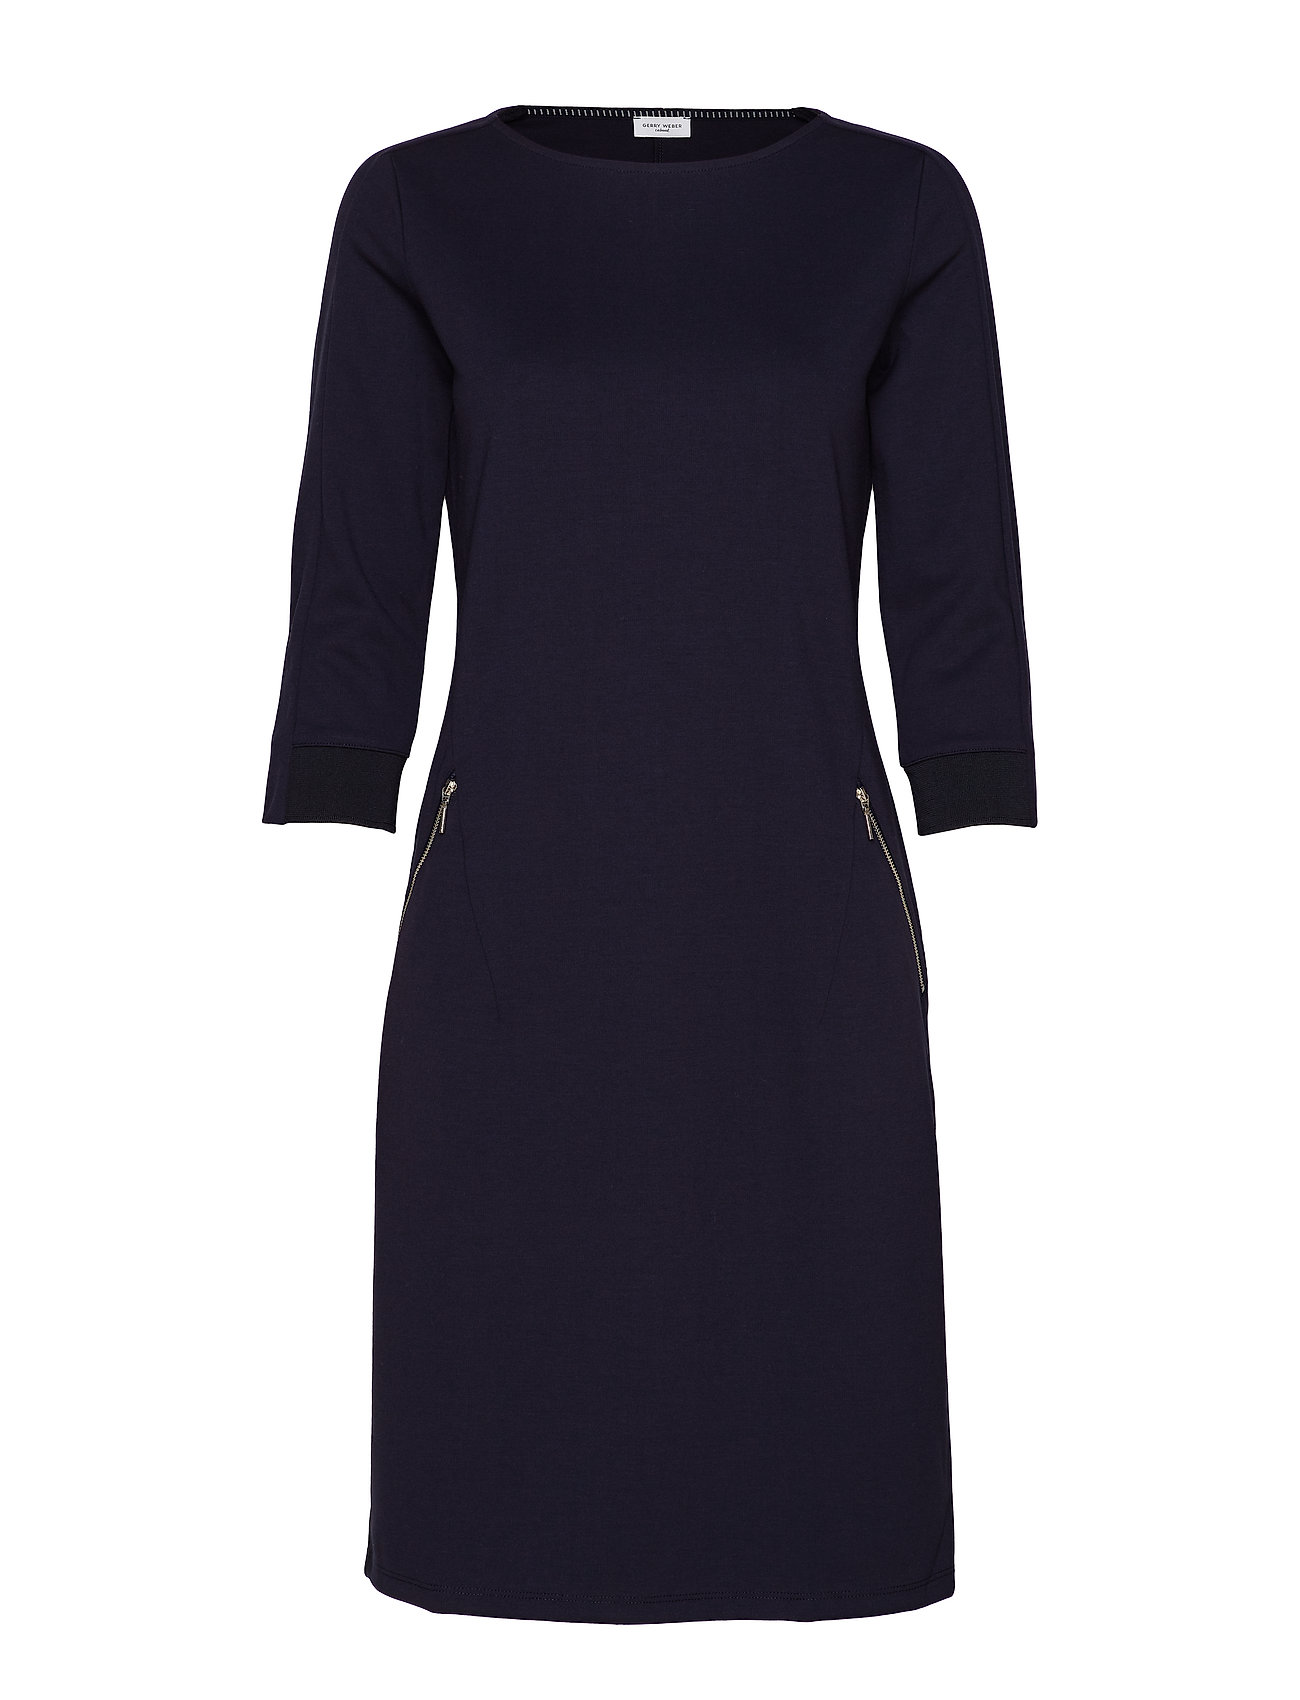 Gerry Weber Edition DRESS KNITTED FABRIC - NAVY BLUE